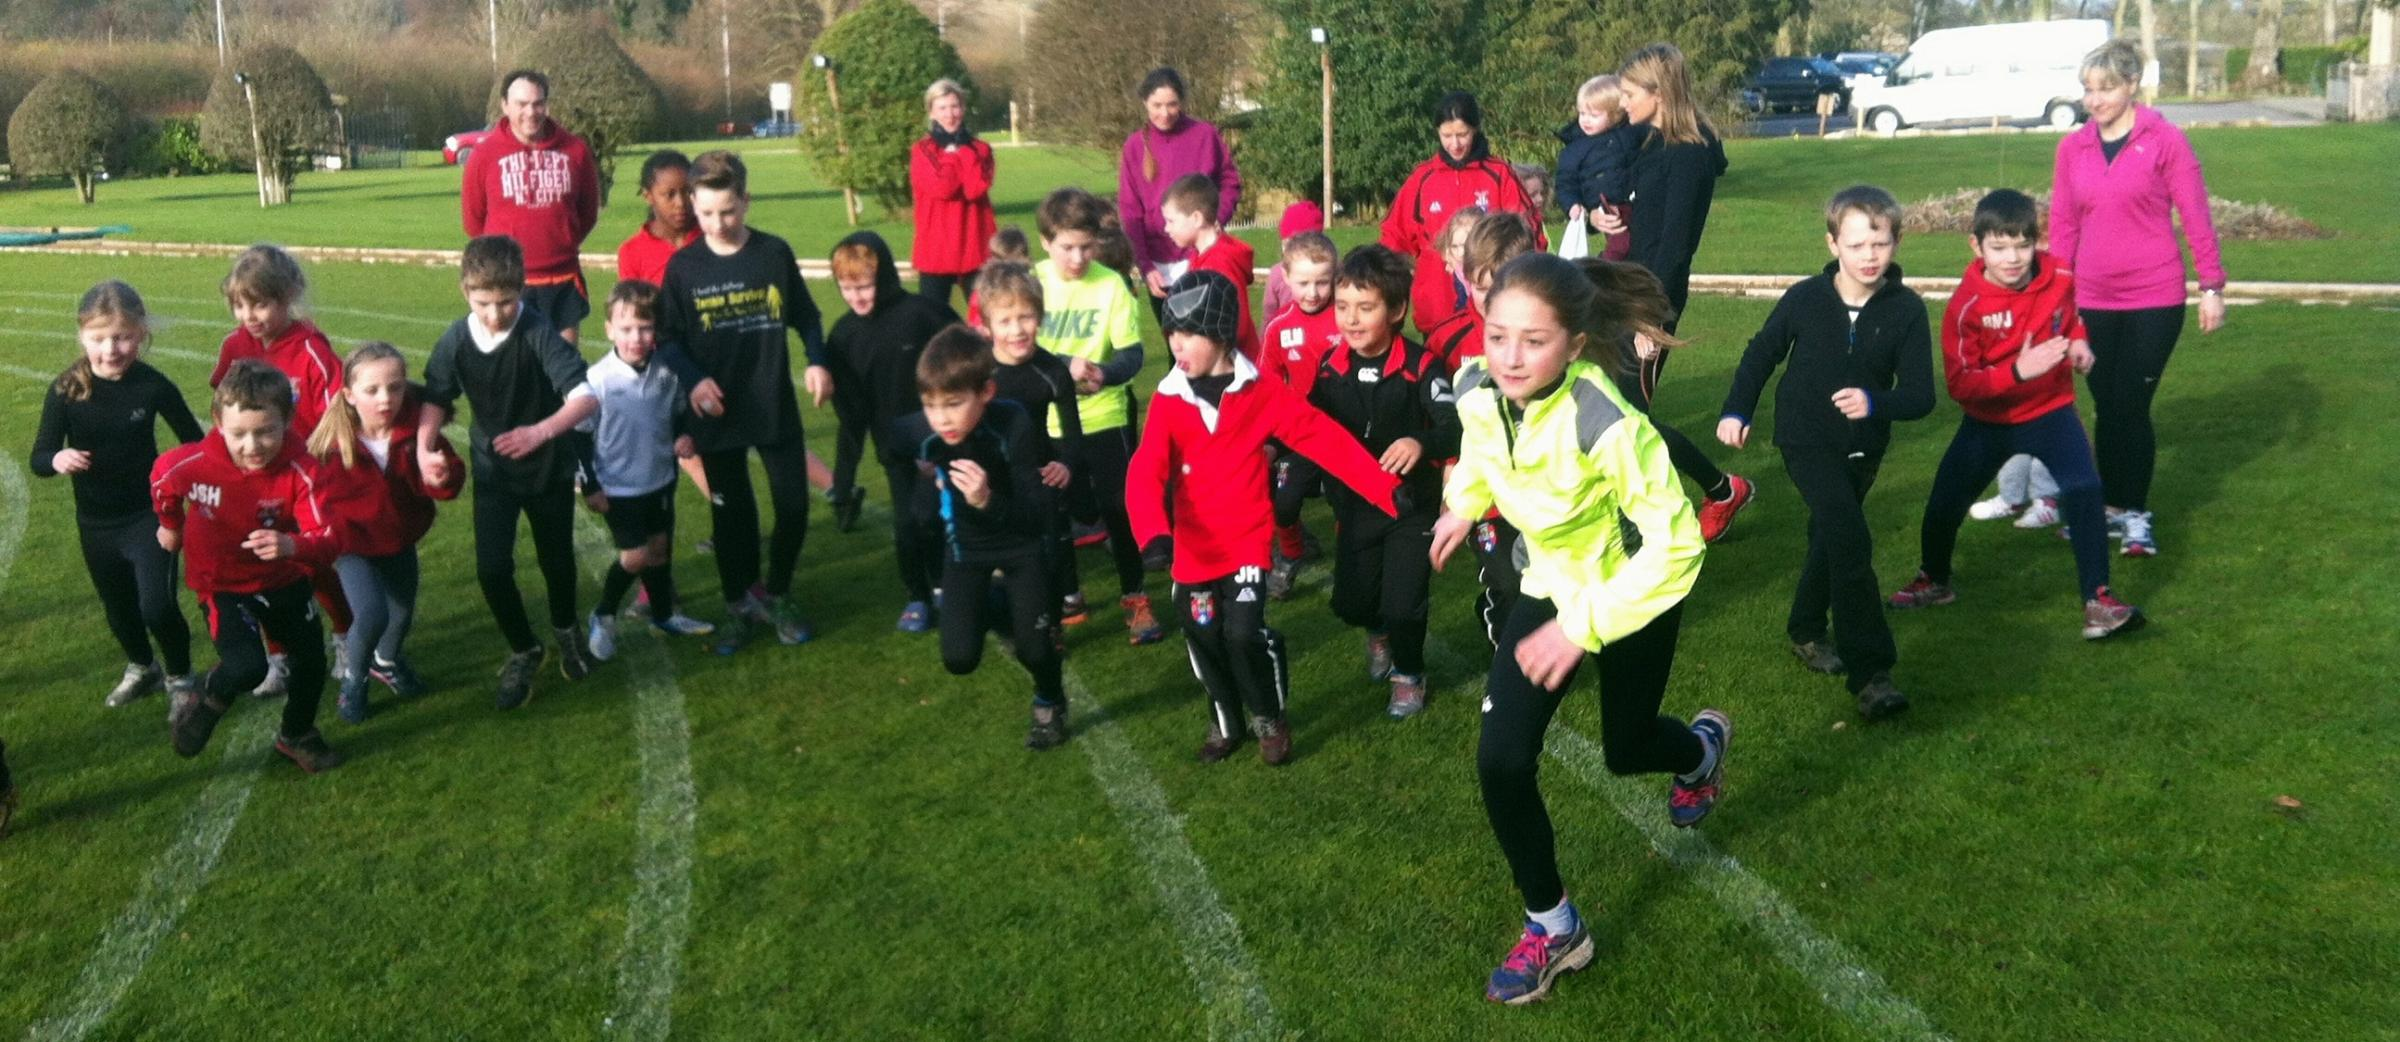 Ghyll Royd School children embrace the theme of Sports Relief and get running to raise funds for the charity